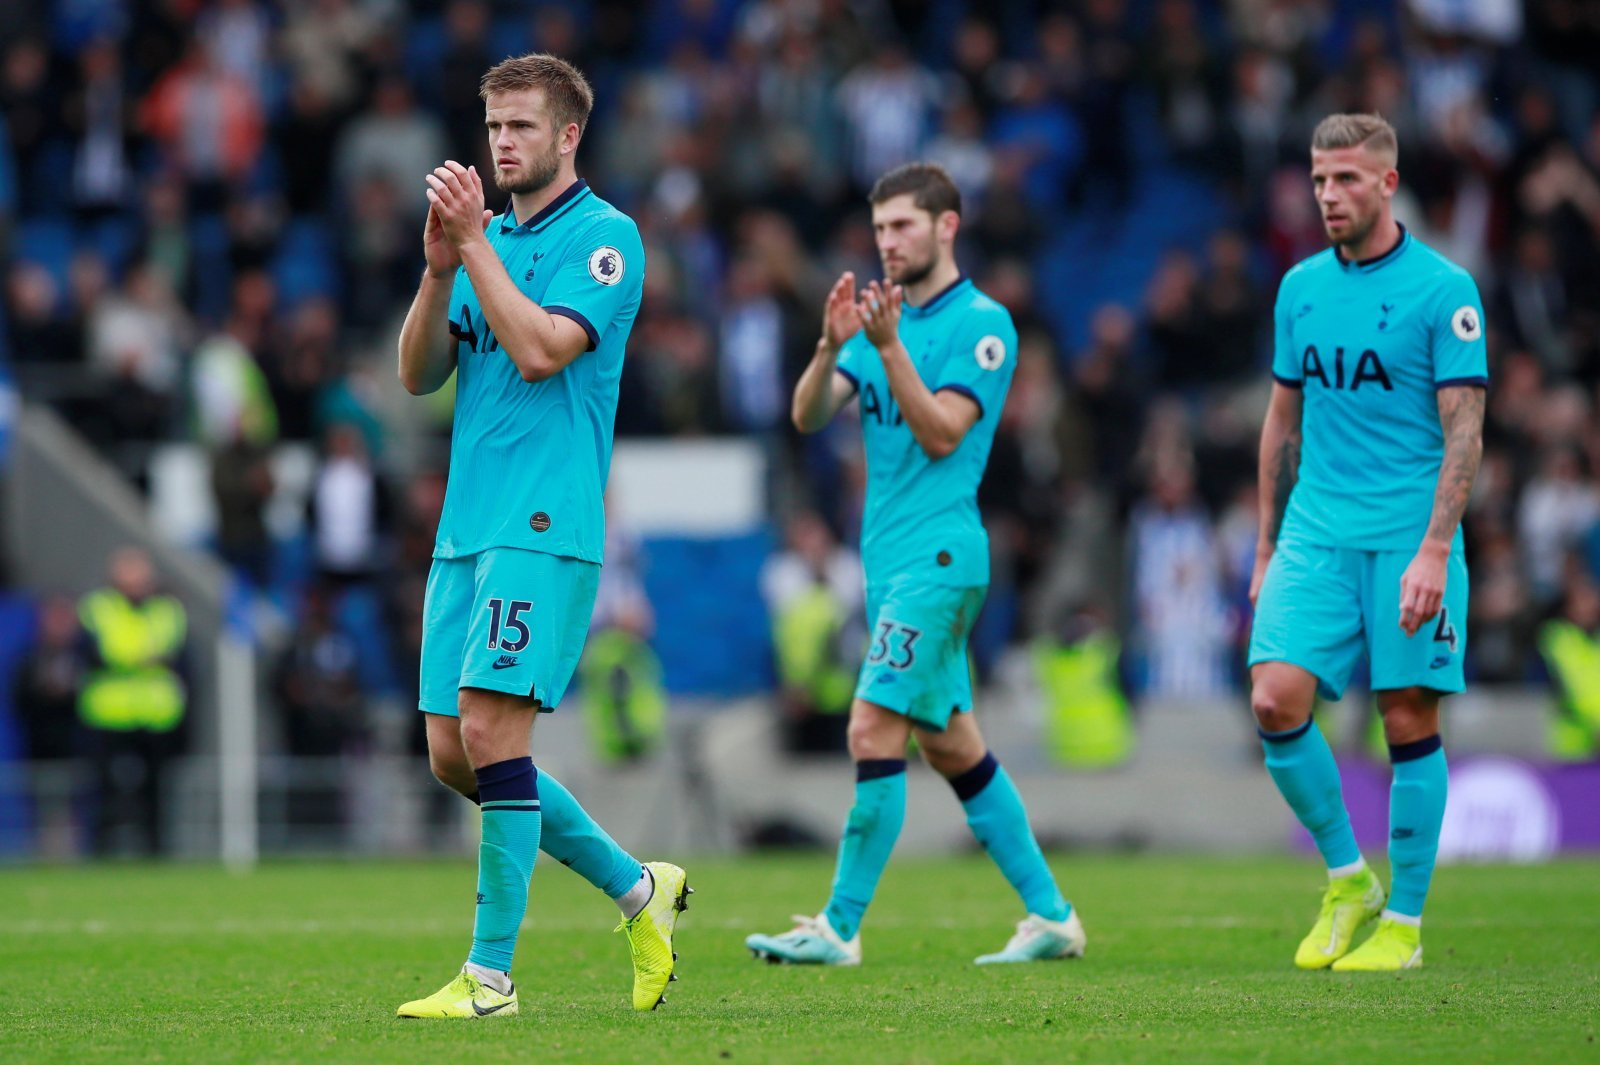 Tottenham Hotspur: Many fans have taken no encouragement from Eric Dier's comments